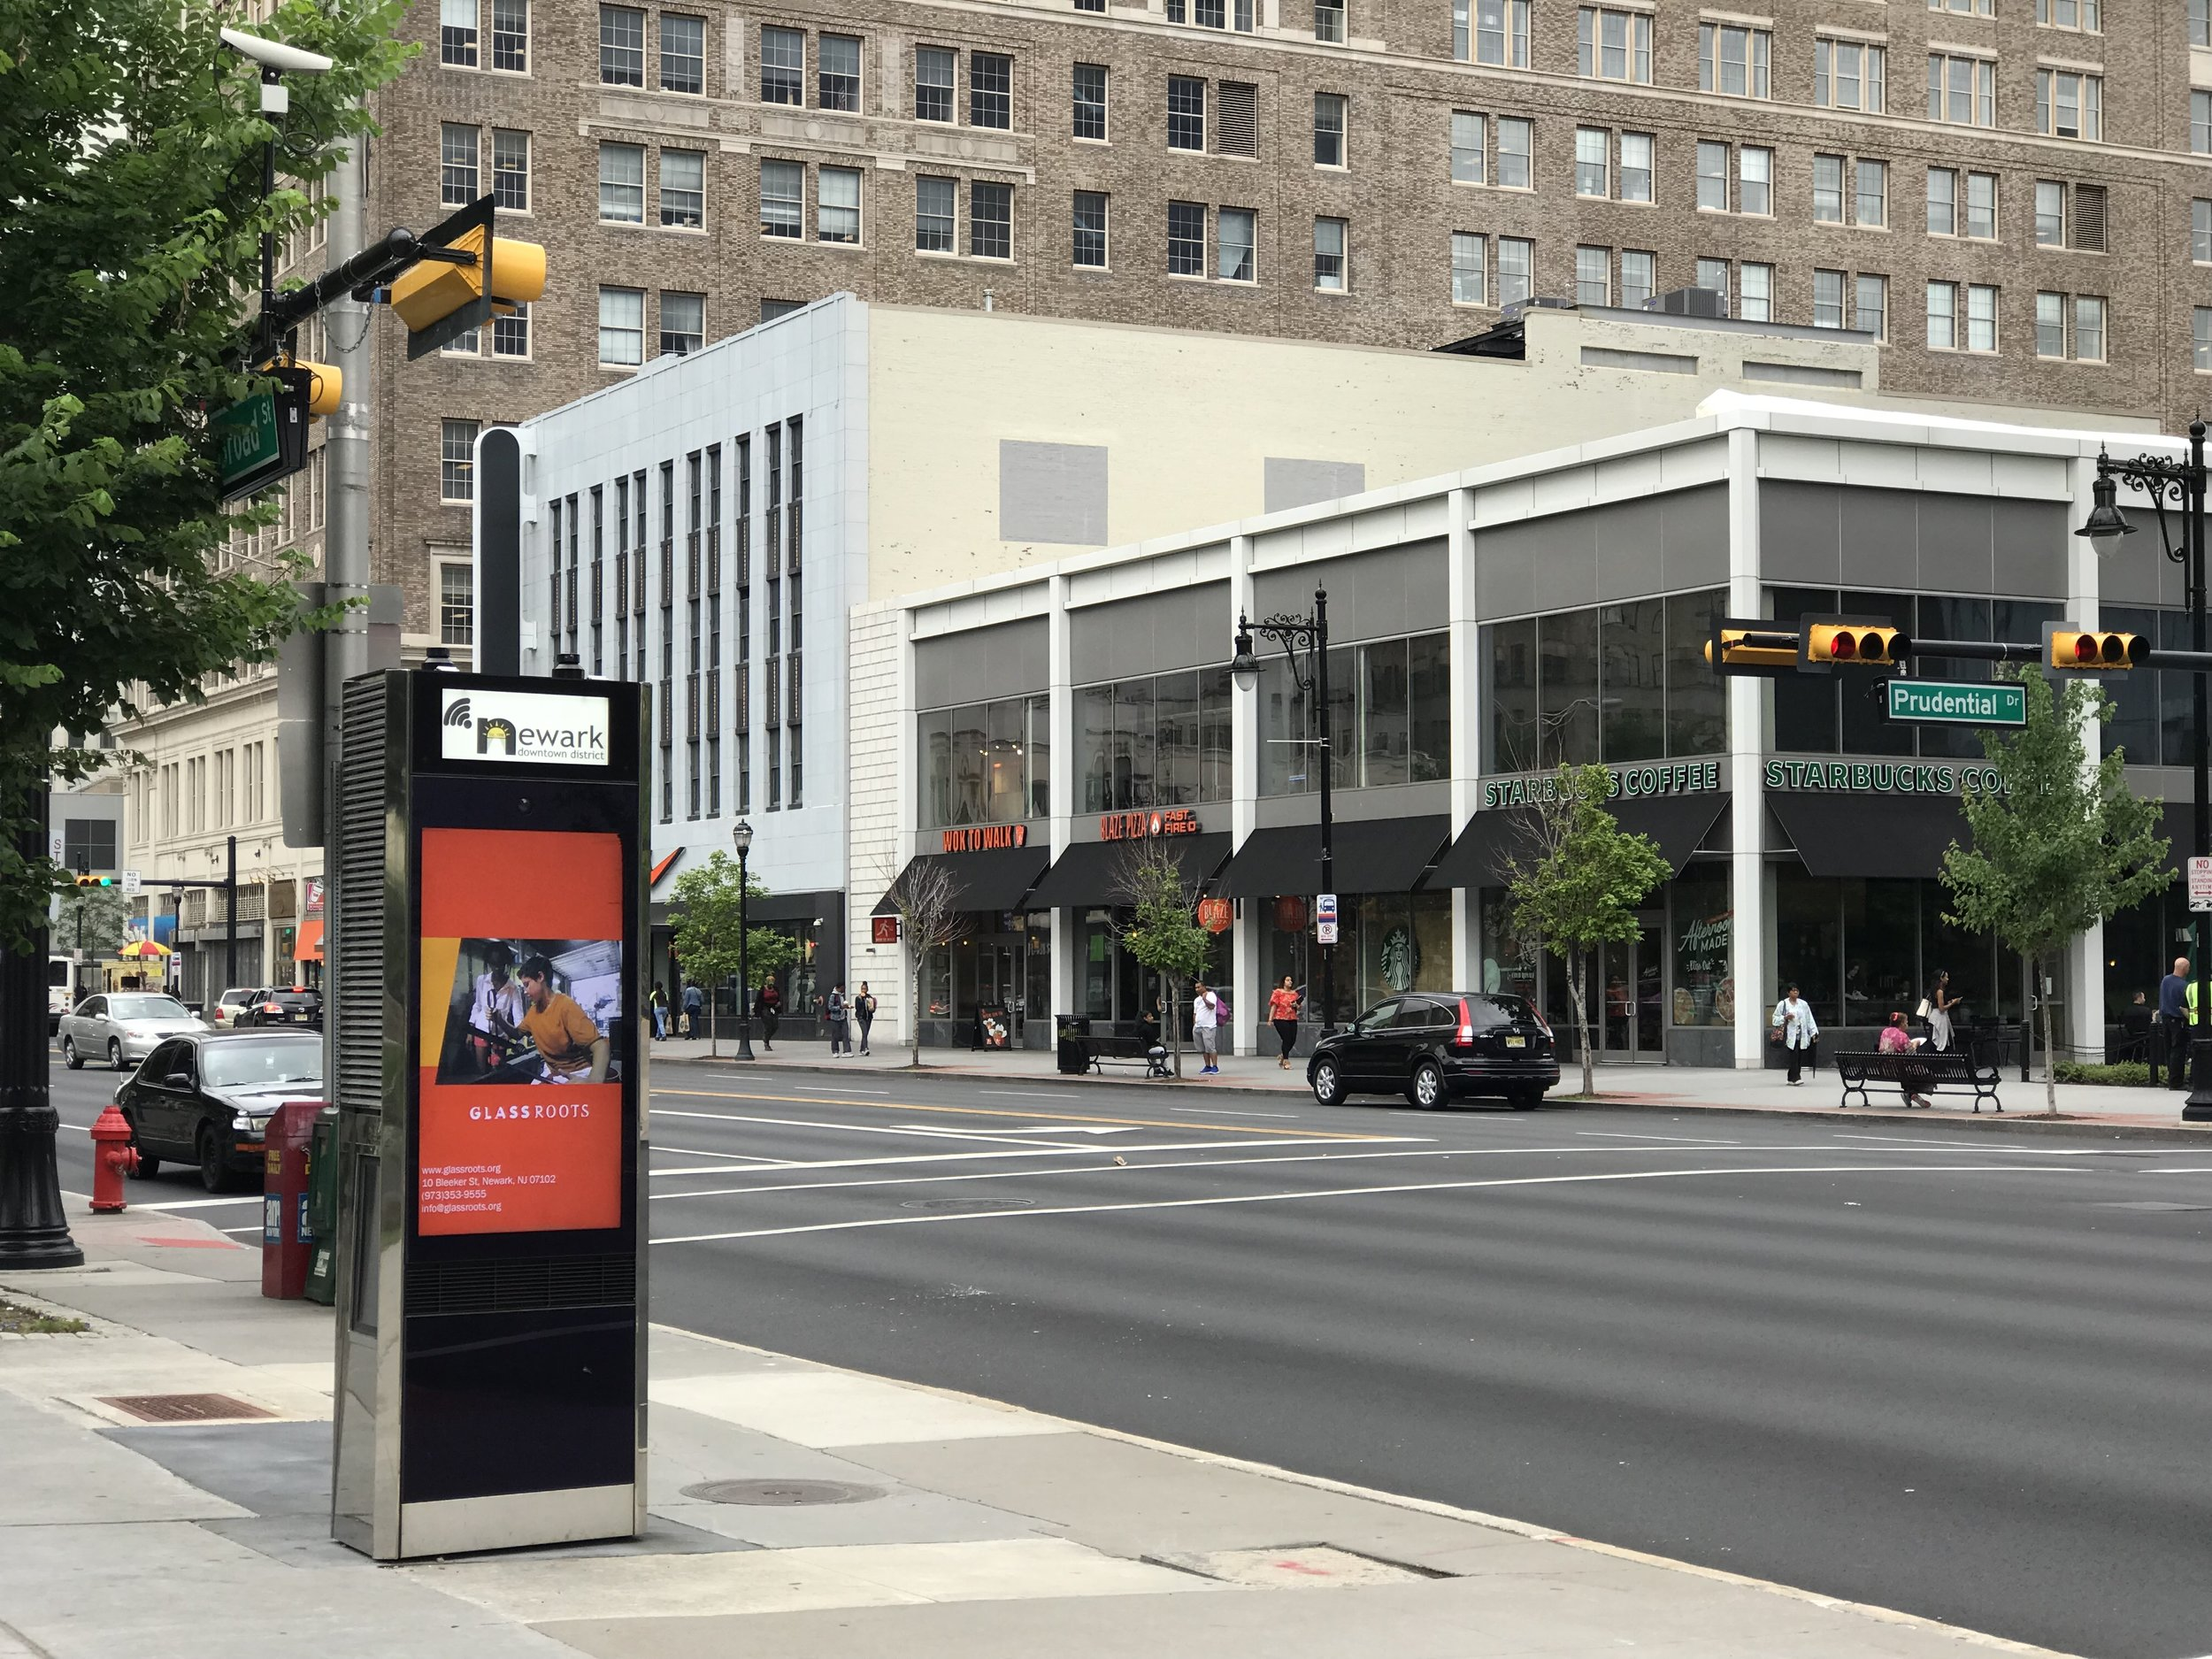 Broad st_Prudential Dr at Military Park in Newark_June 11, 2018.jpg